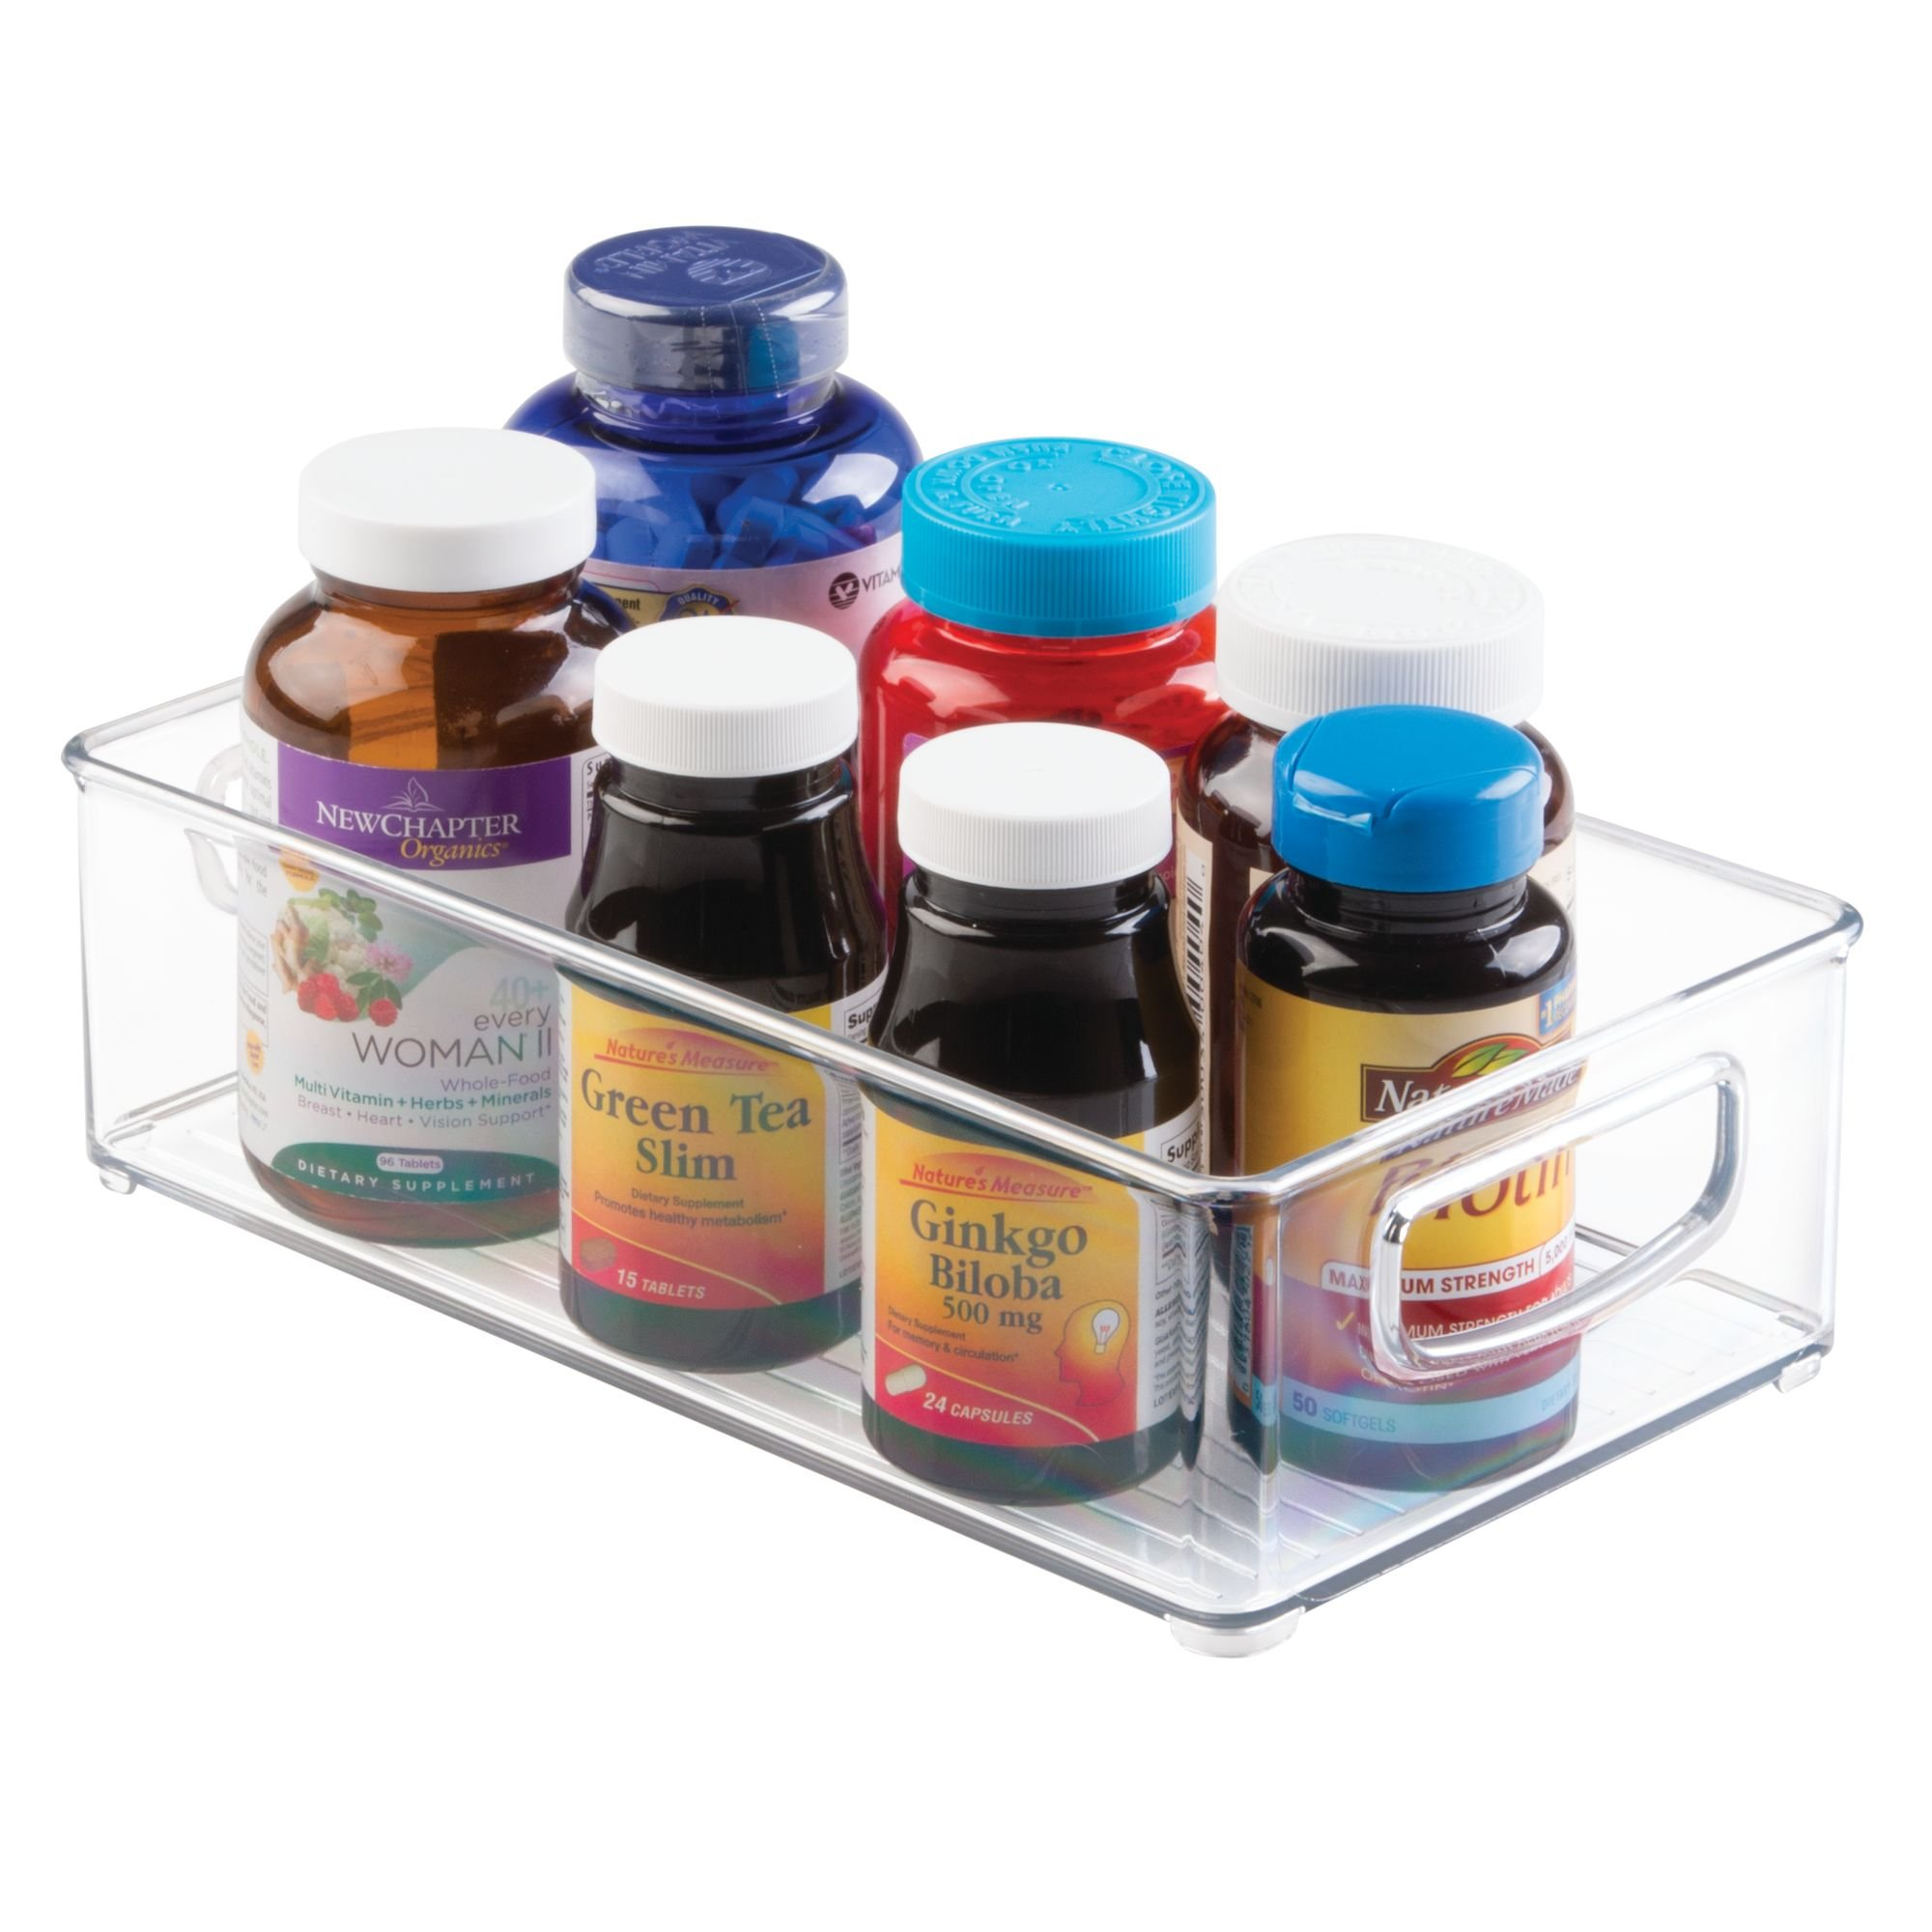 mDesign Stackable Storage Organizer Bin Tray with Built-in Handles - Holds Vitamins, Supplements, Serums, Essential Oils, Medical Supplies, First Aid Supplies - 3'' High - Pack of 2, Clear by mDesign (Image #5)